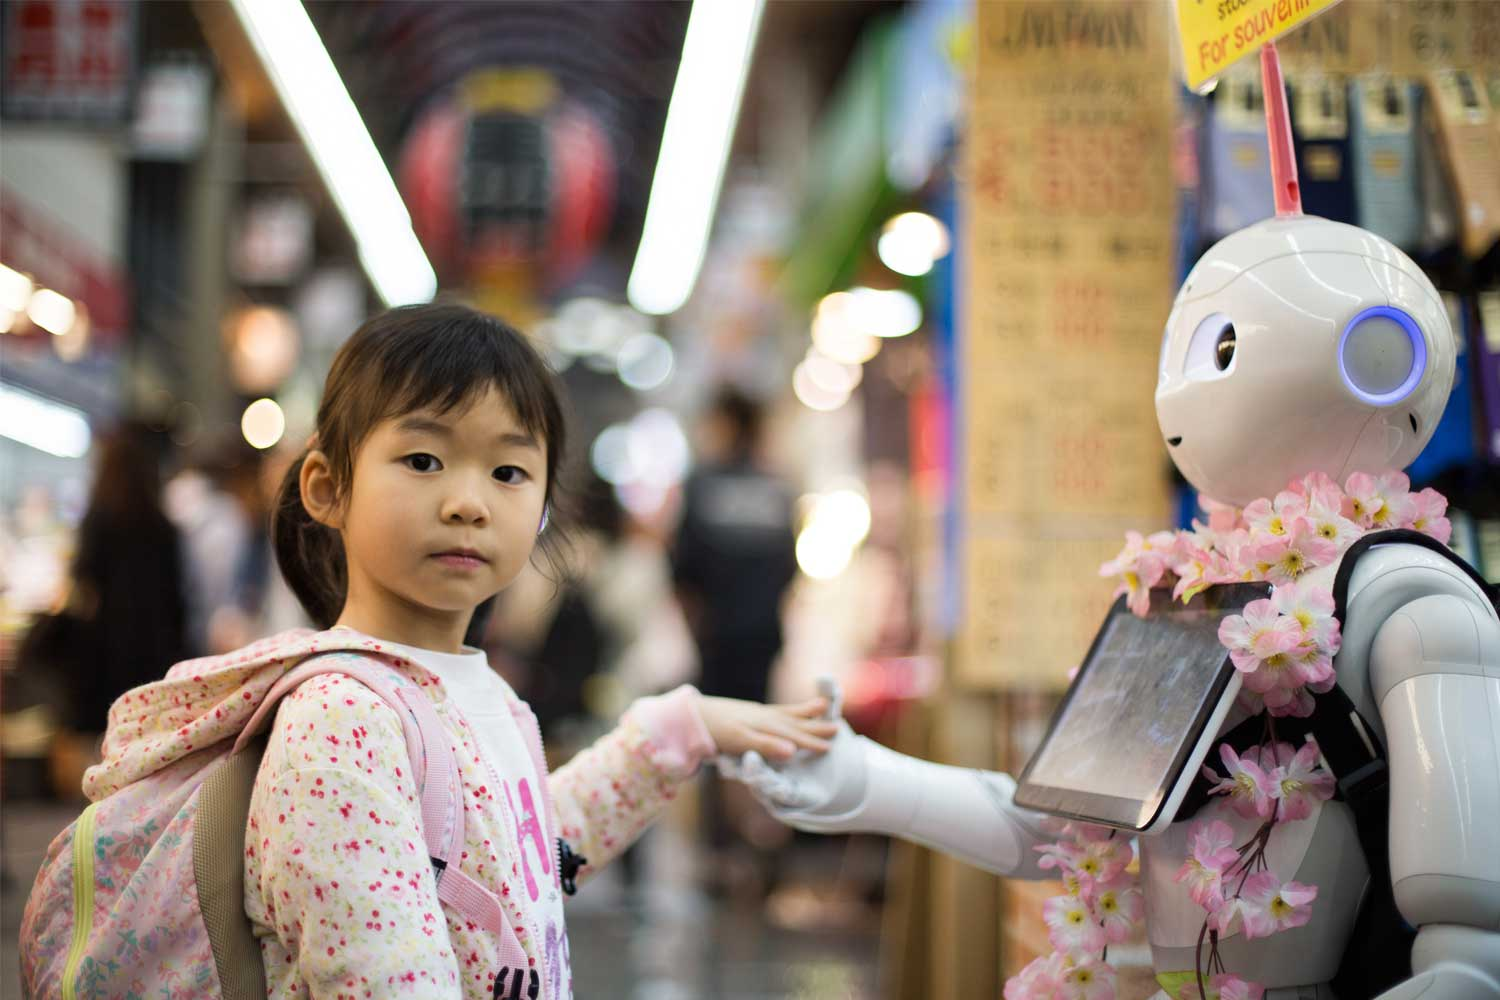 Child with AI